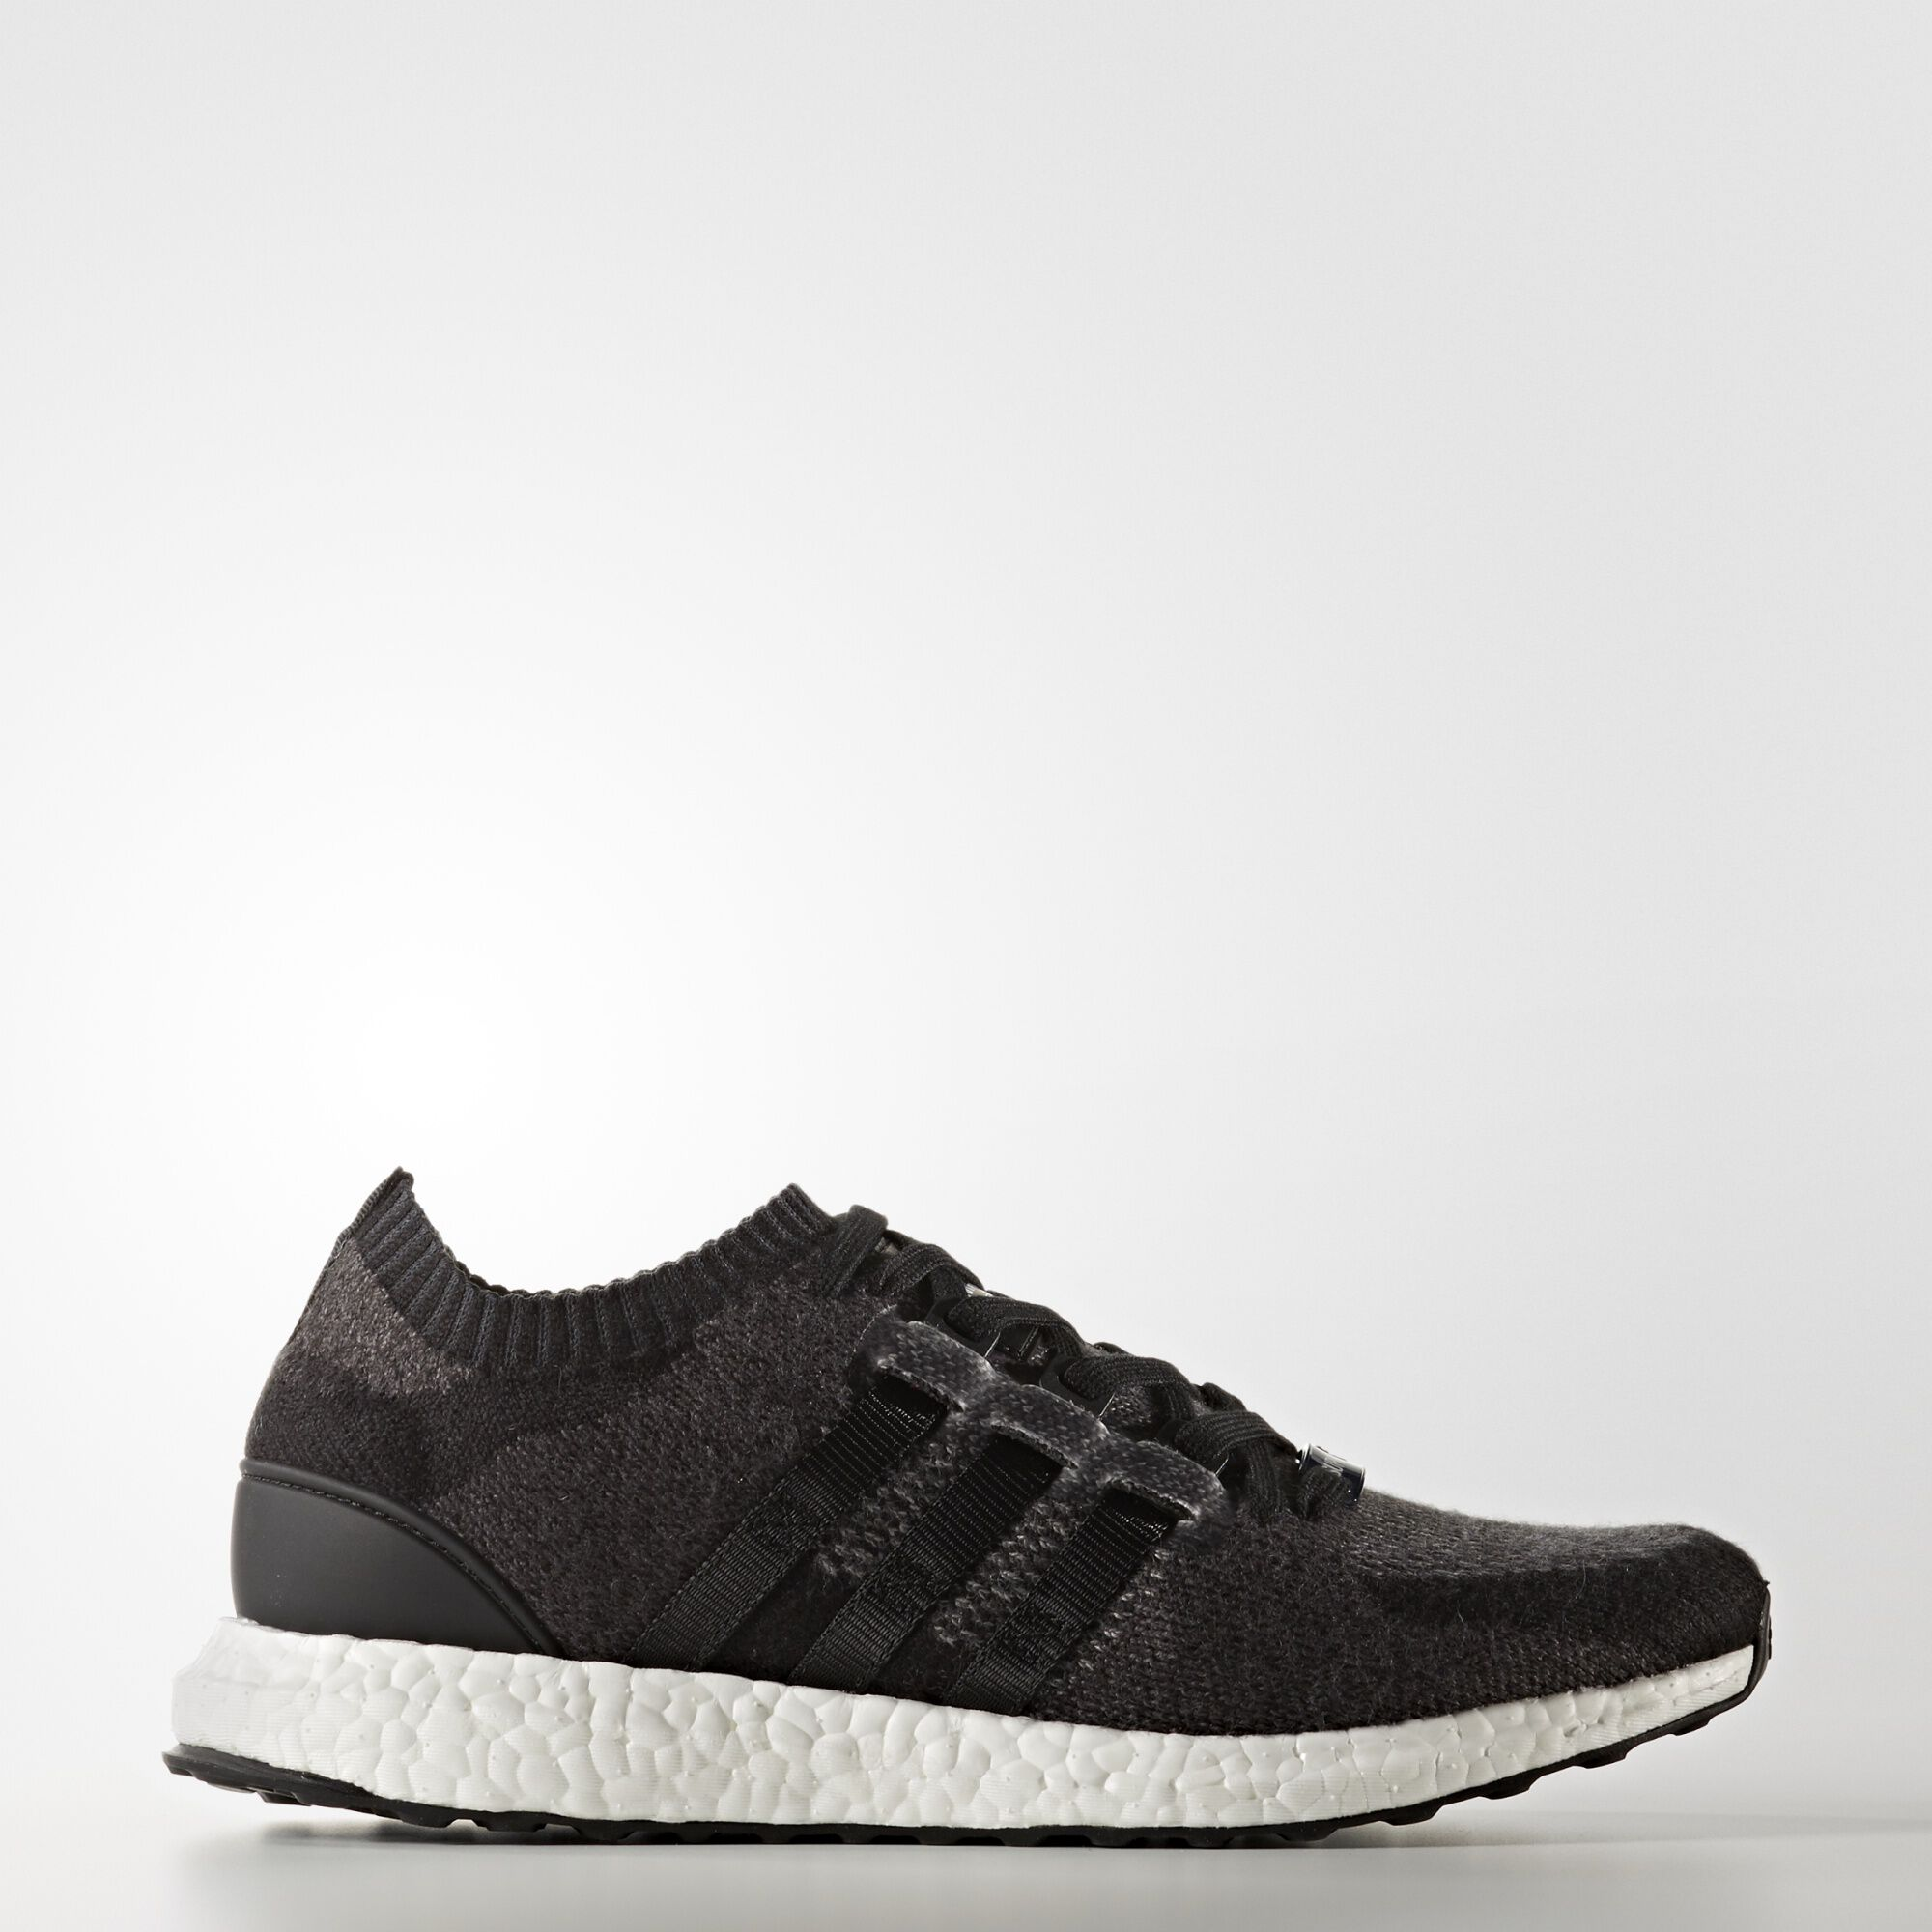 adidas EQT Support Refine 93 17 Turbo Core Black Equipment